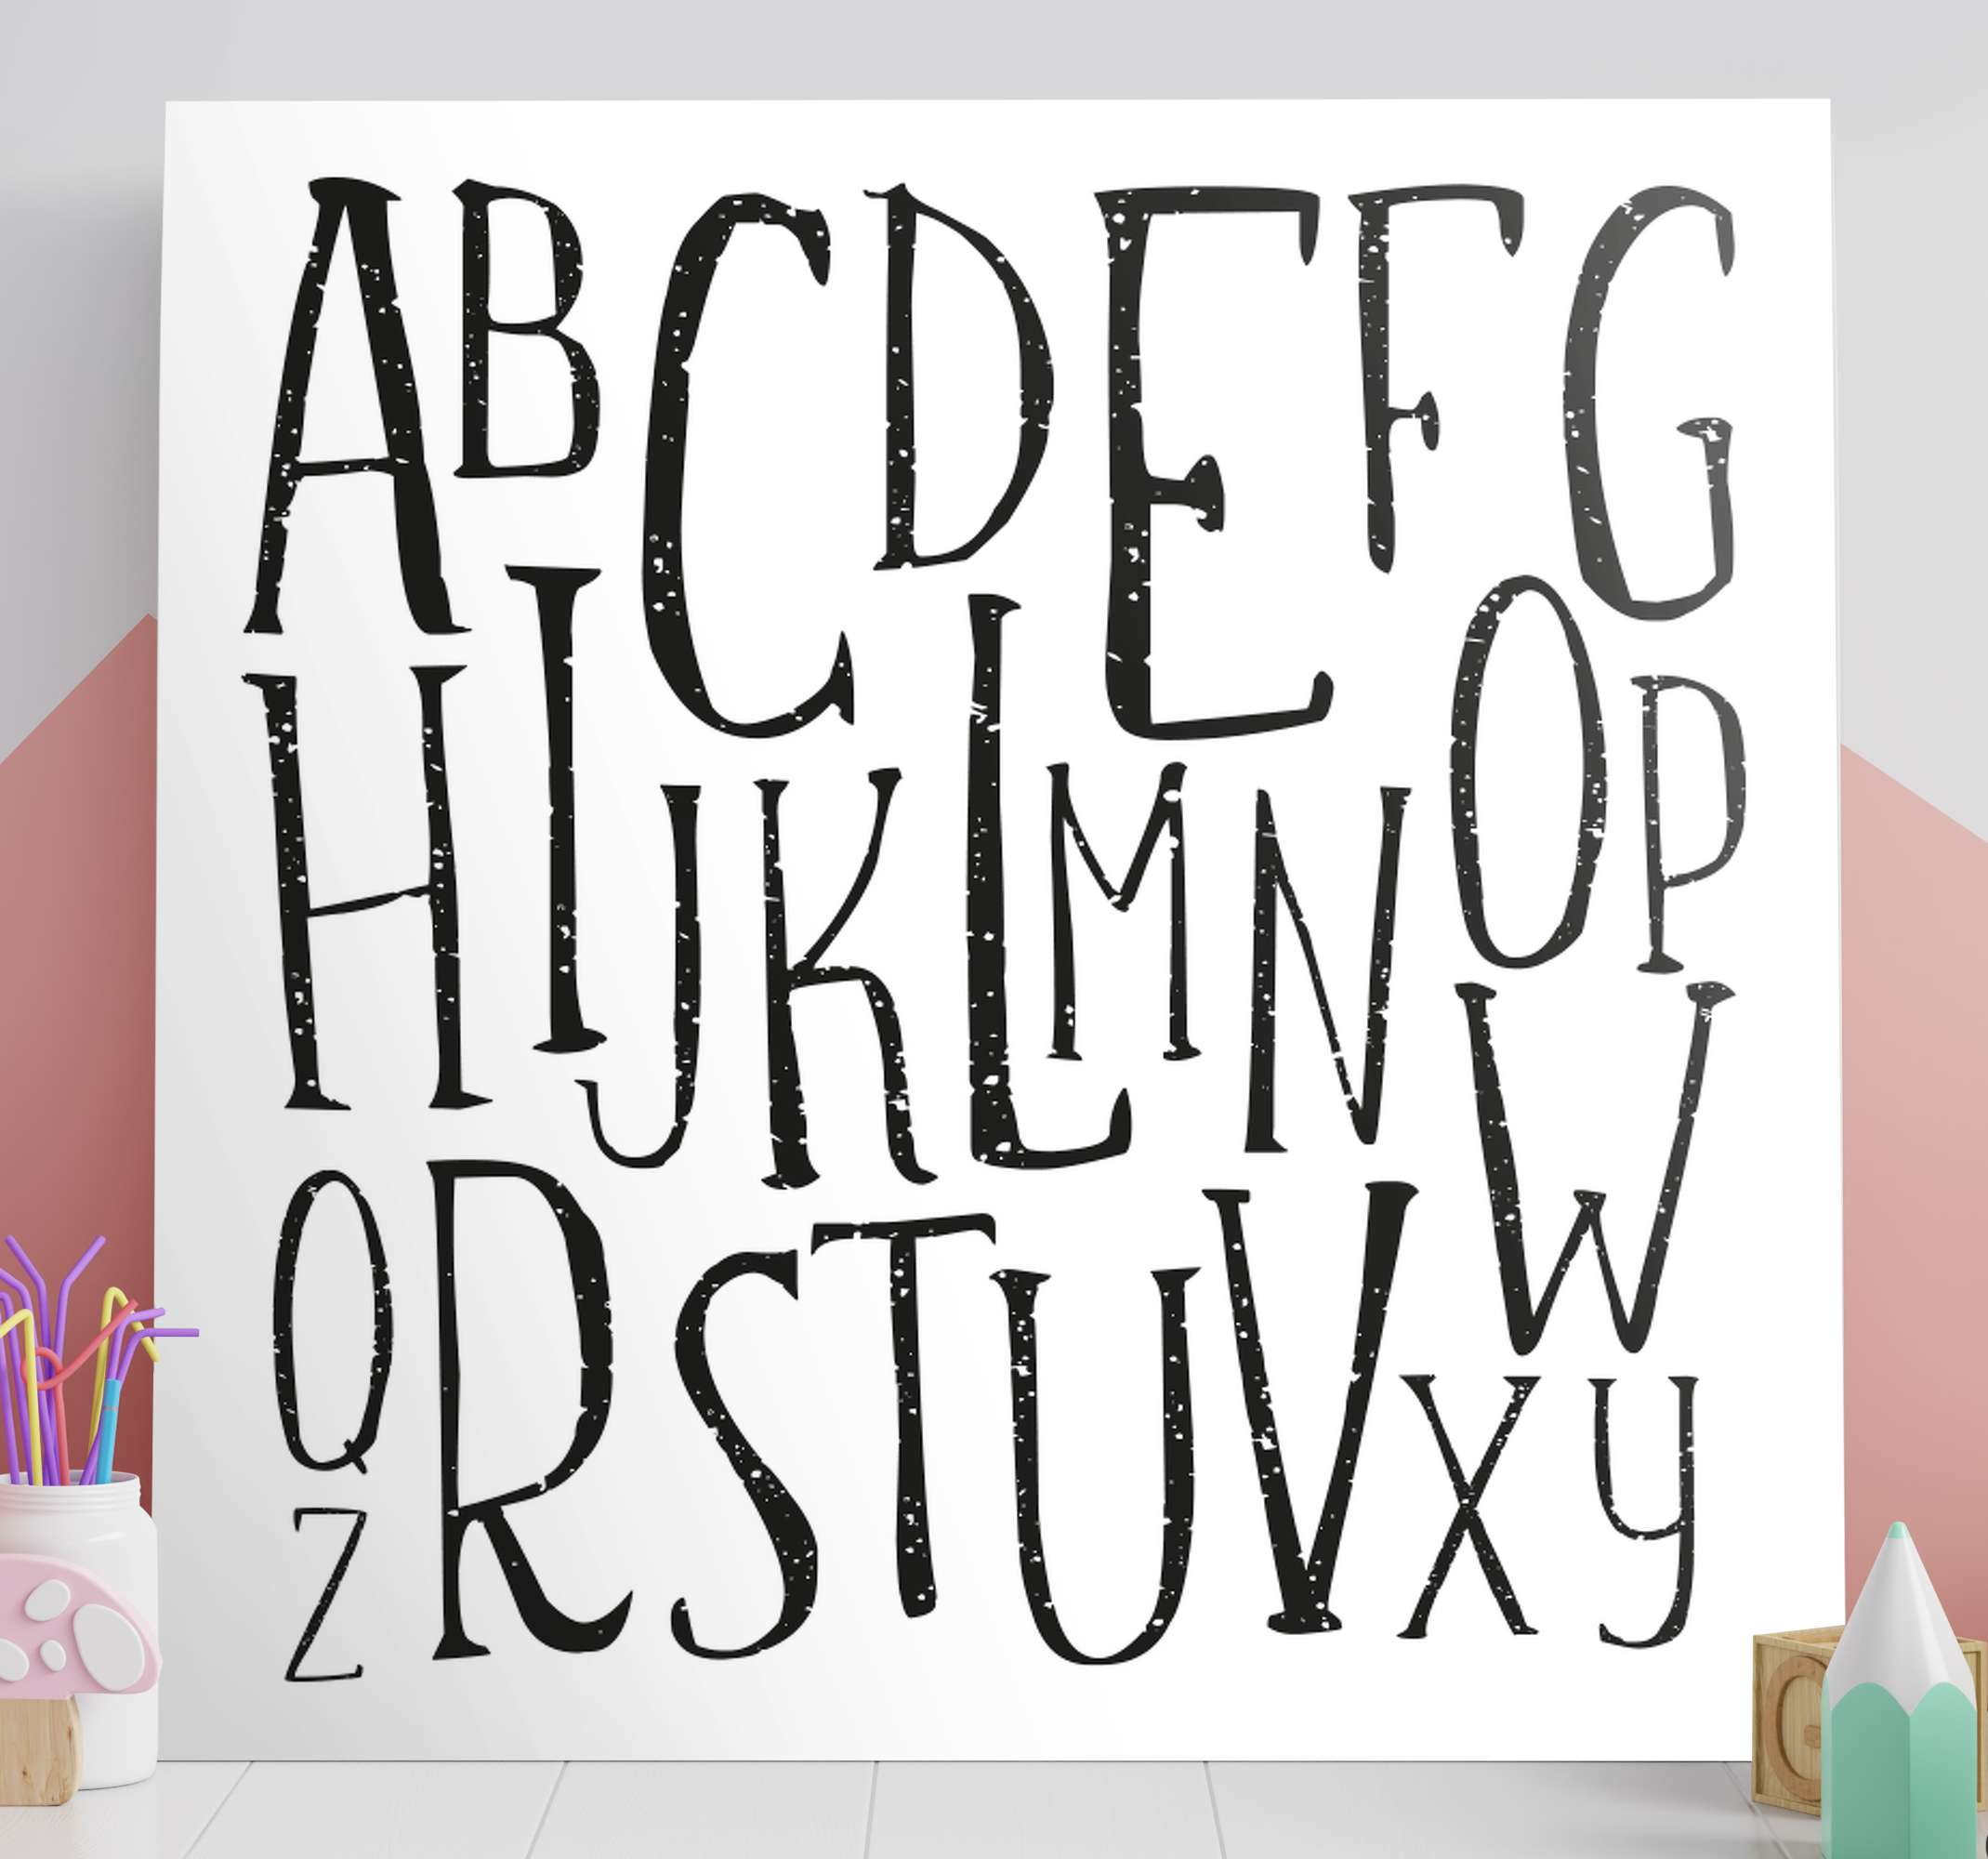 TenStickers. Alphabet letters Letter Canvas wall art. Alphabet letters canvas print - This can be decorated on children space, playroom, nursery, etc. It is printed in quality finish and it does not fade.